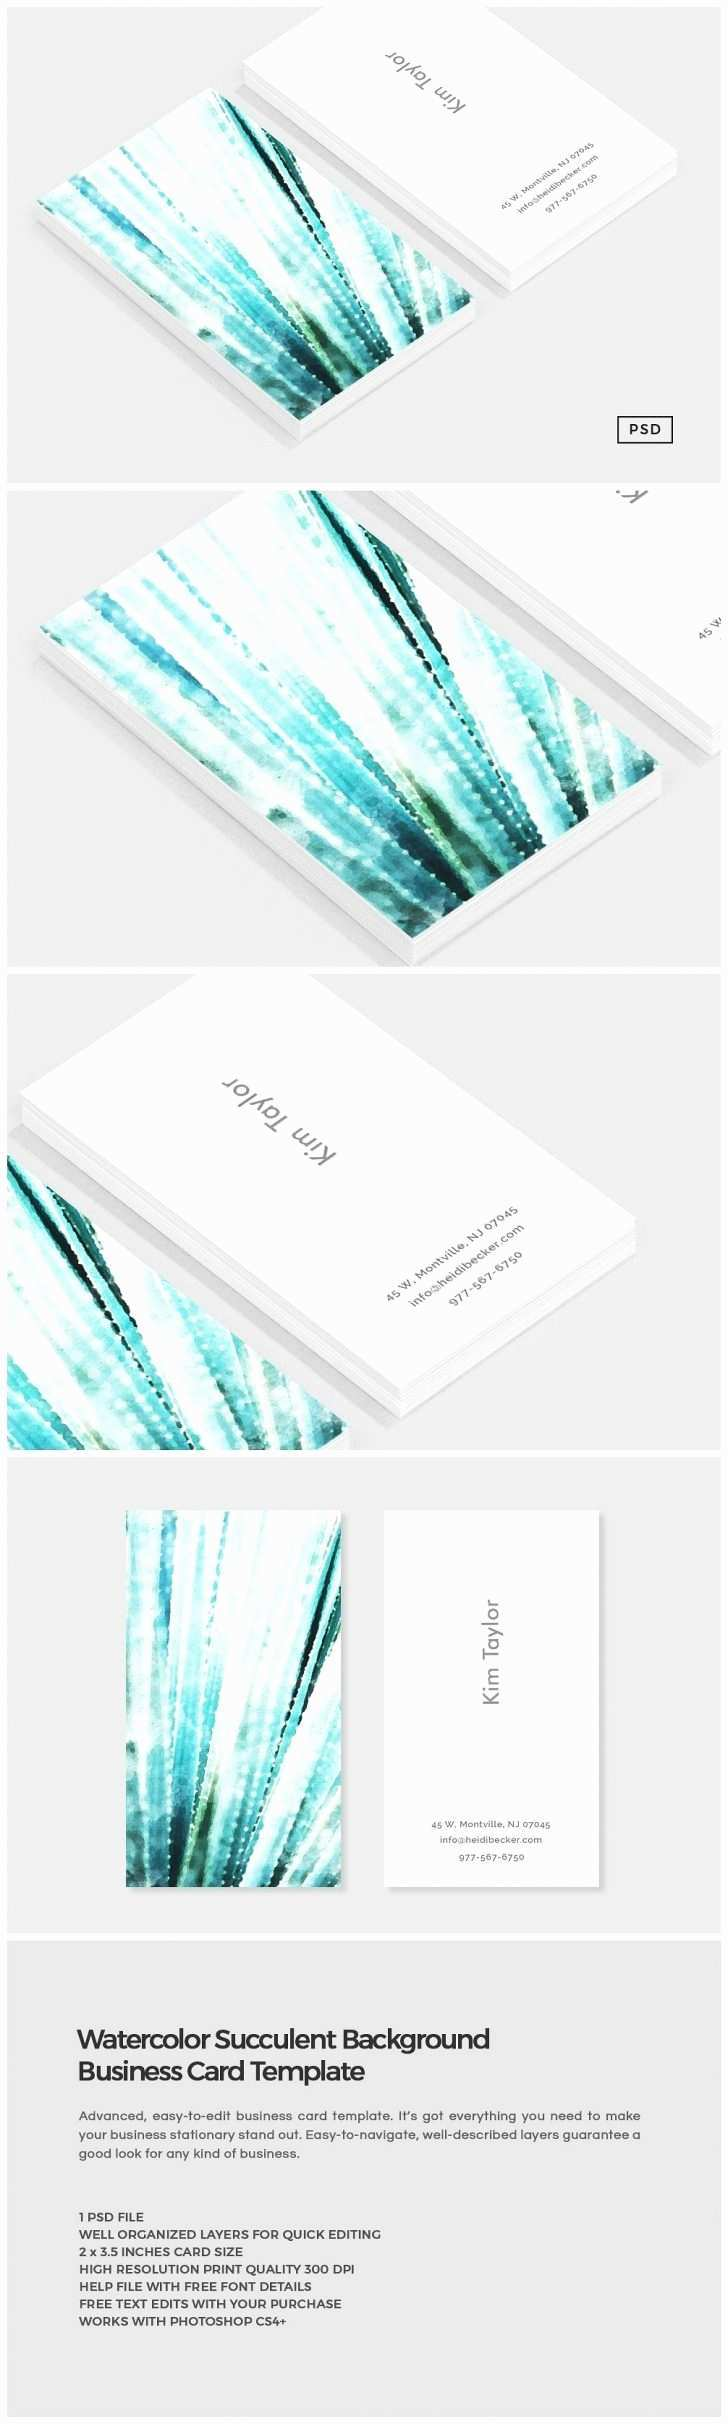 38 Customize Our Free Business Card Template Lightroom Download by Business Card Template Lightroom